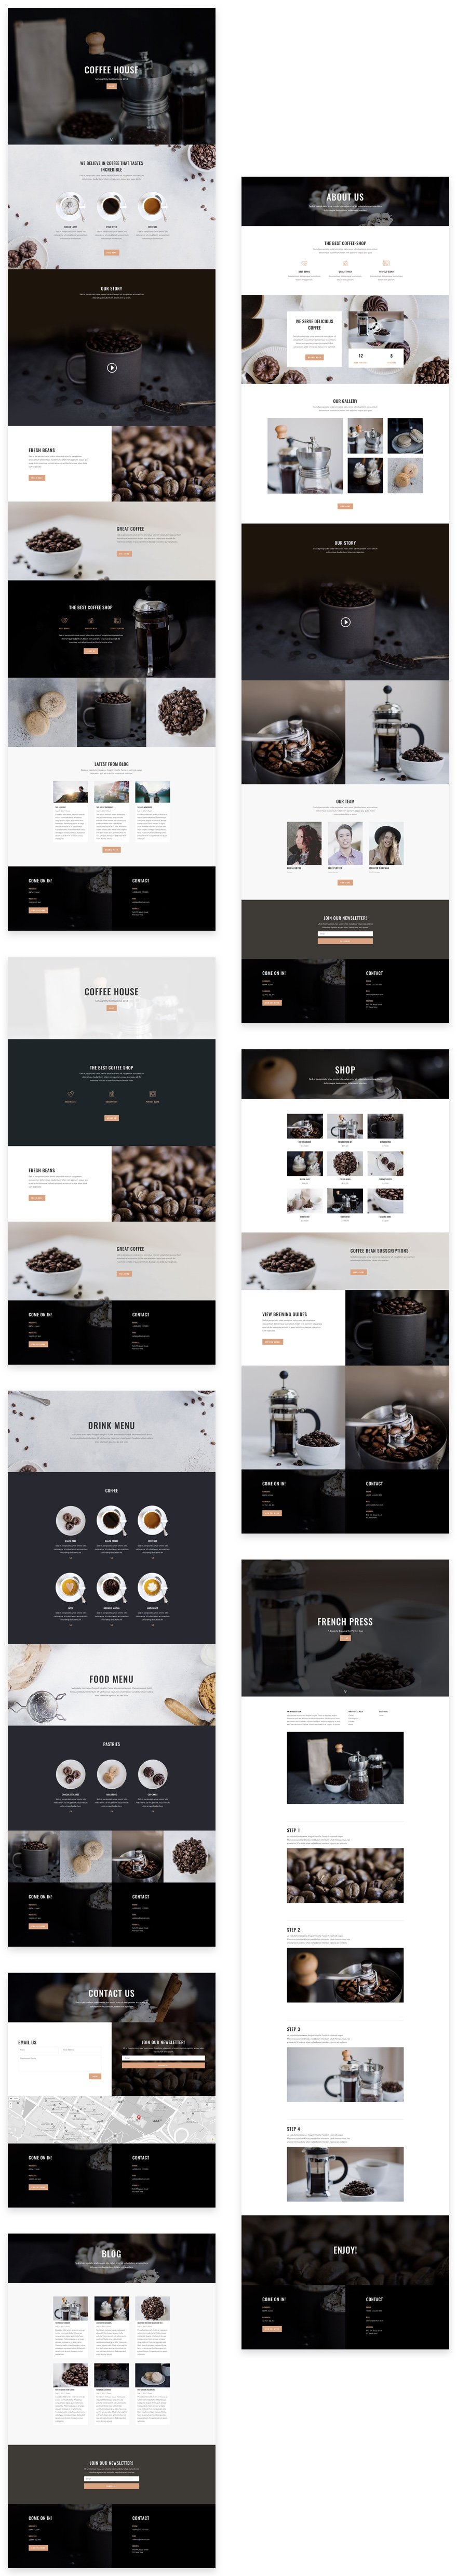 Download a tasty free coffee shop layout pack for divi elegant coffee shop malvernweather Gallery